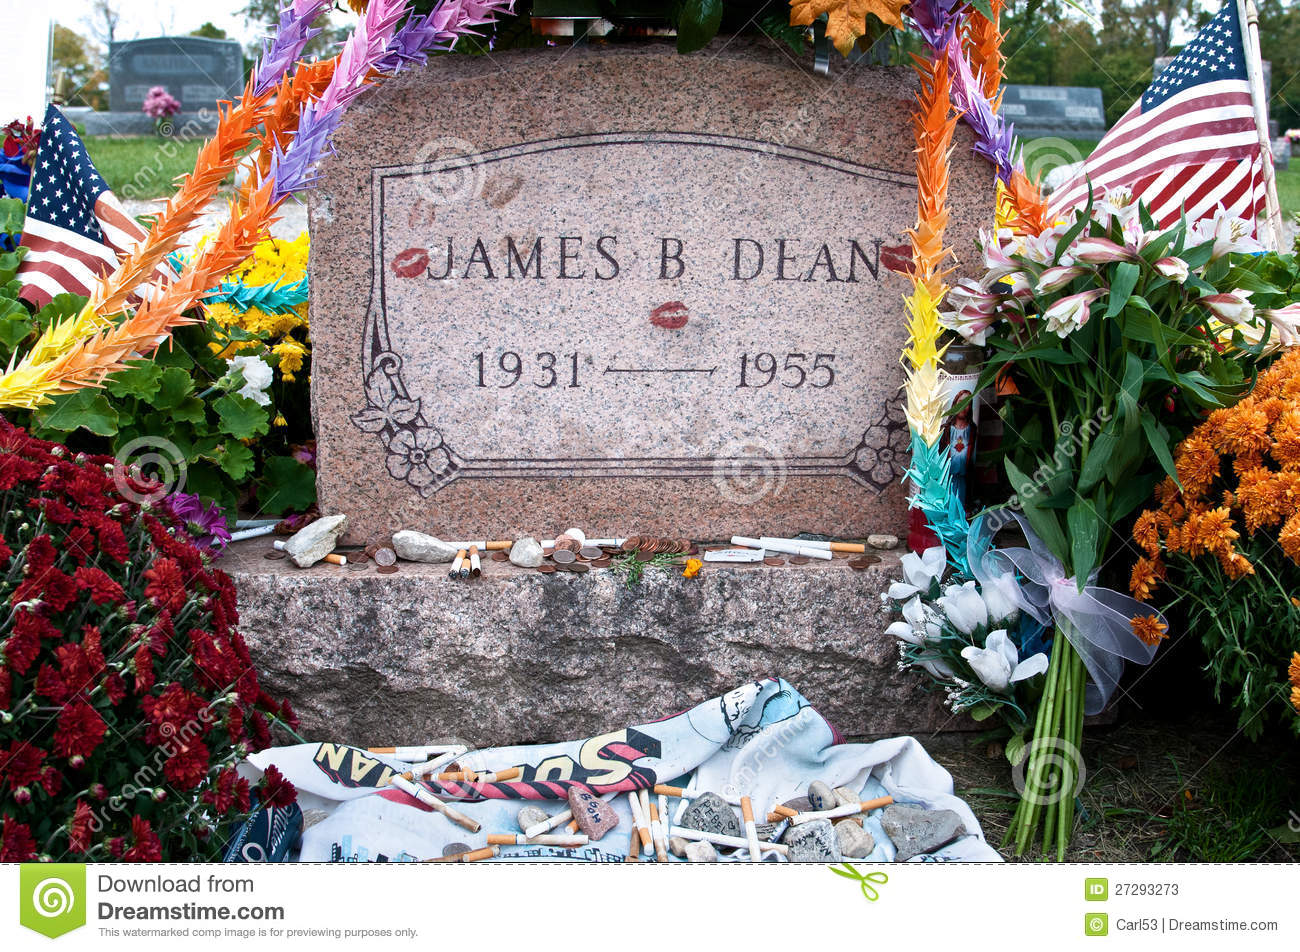 James Dean Headstone At Grave Site Editorial Stock Photo - Image of